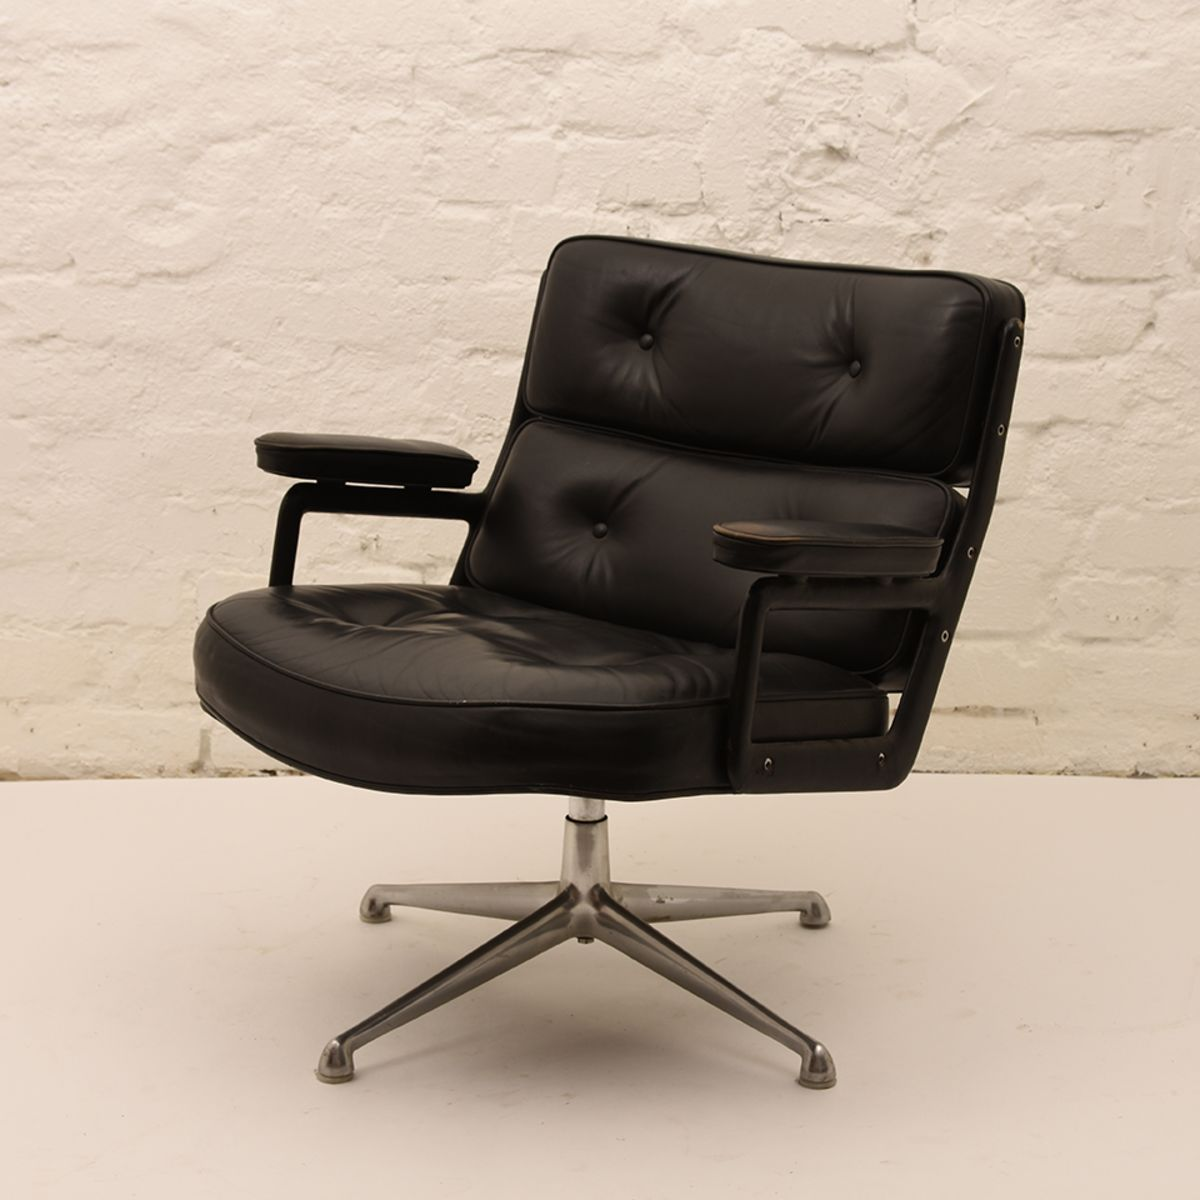 Charles-Ray-Eames_Lobby-Chair